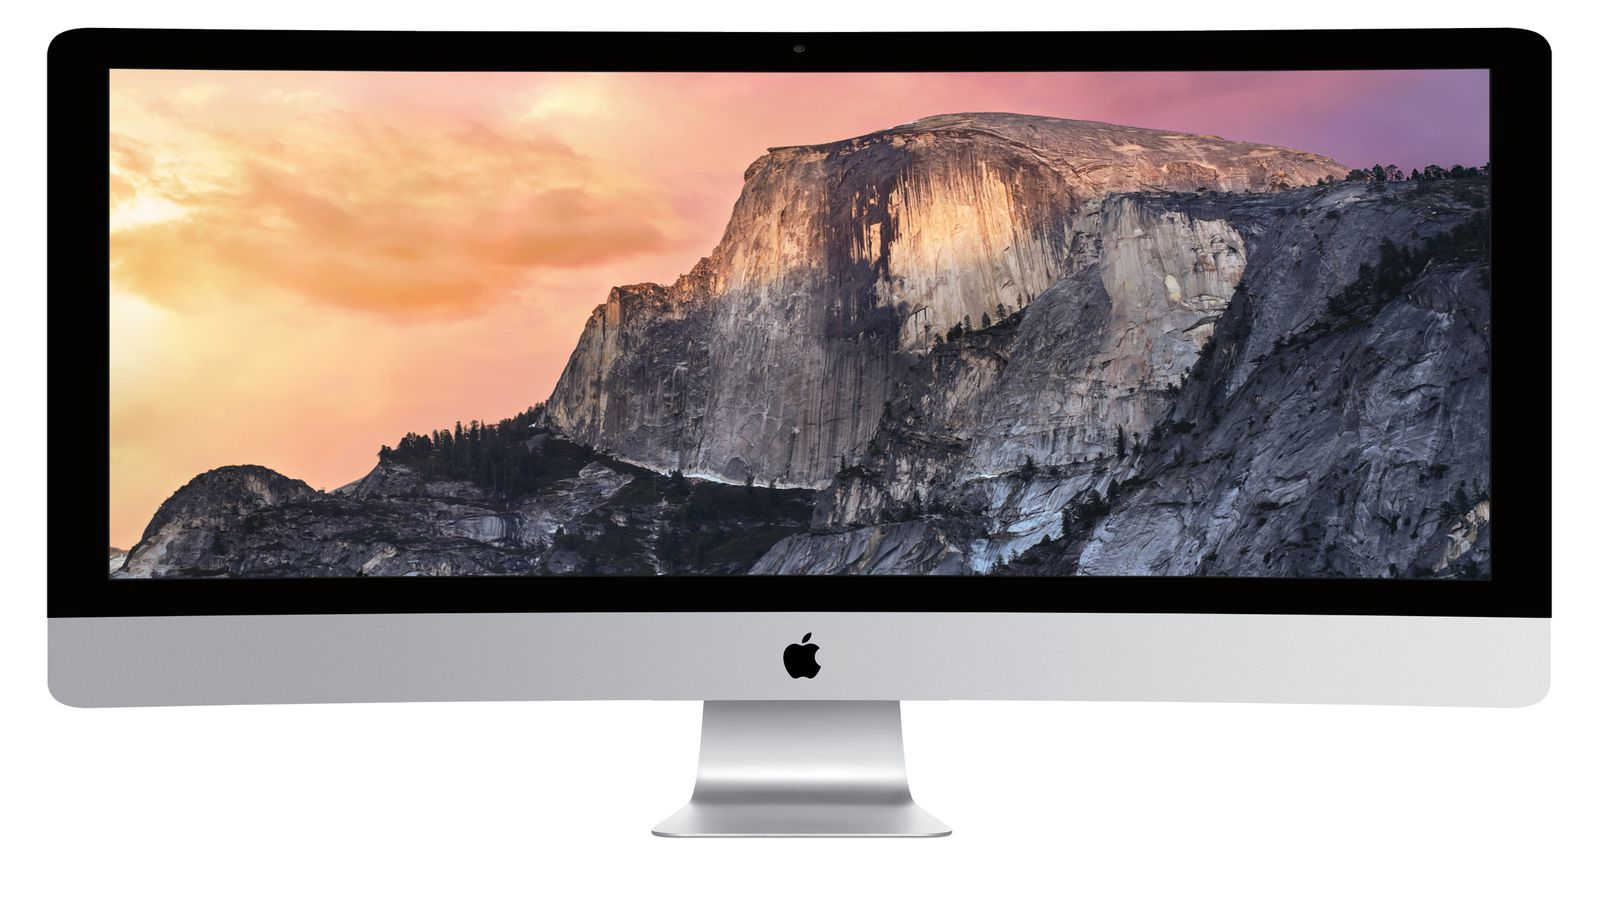 now is the time for my curved imac dream to come true